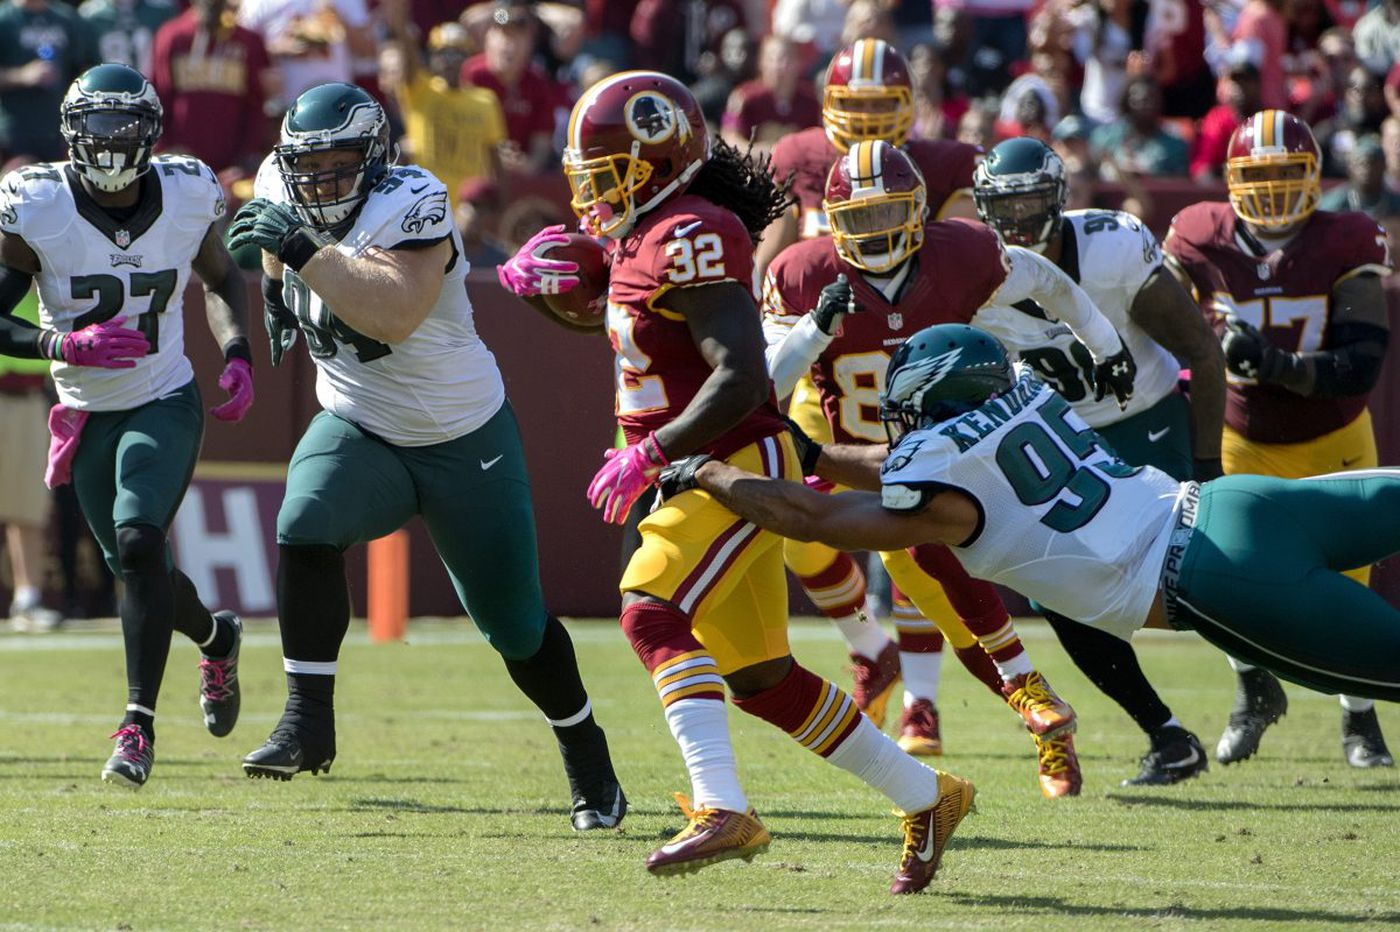 Scouting report: Eagles vs. Redskins